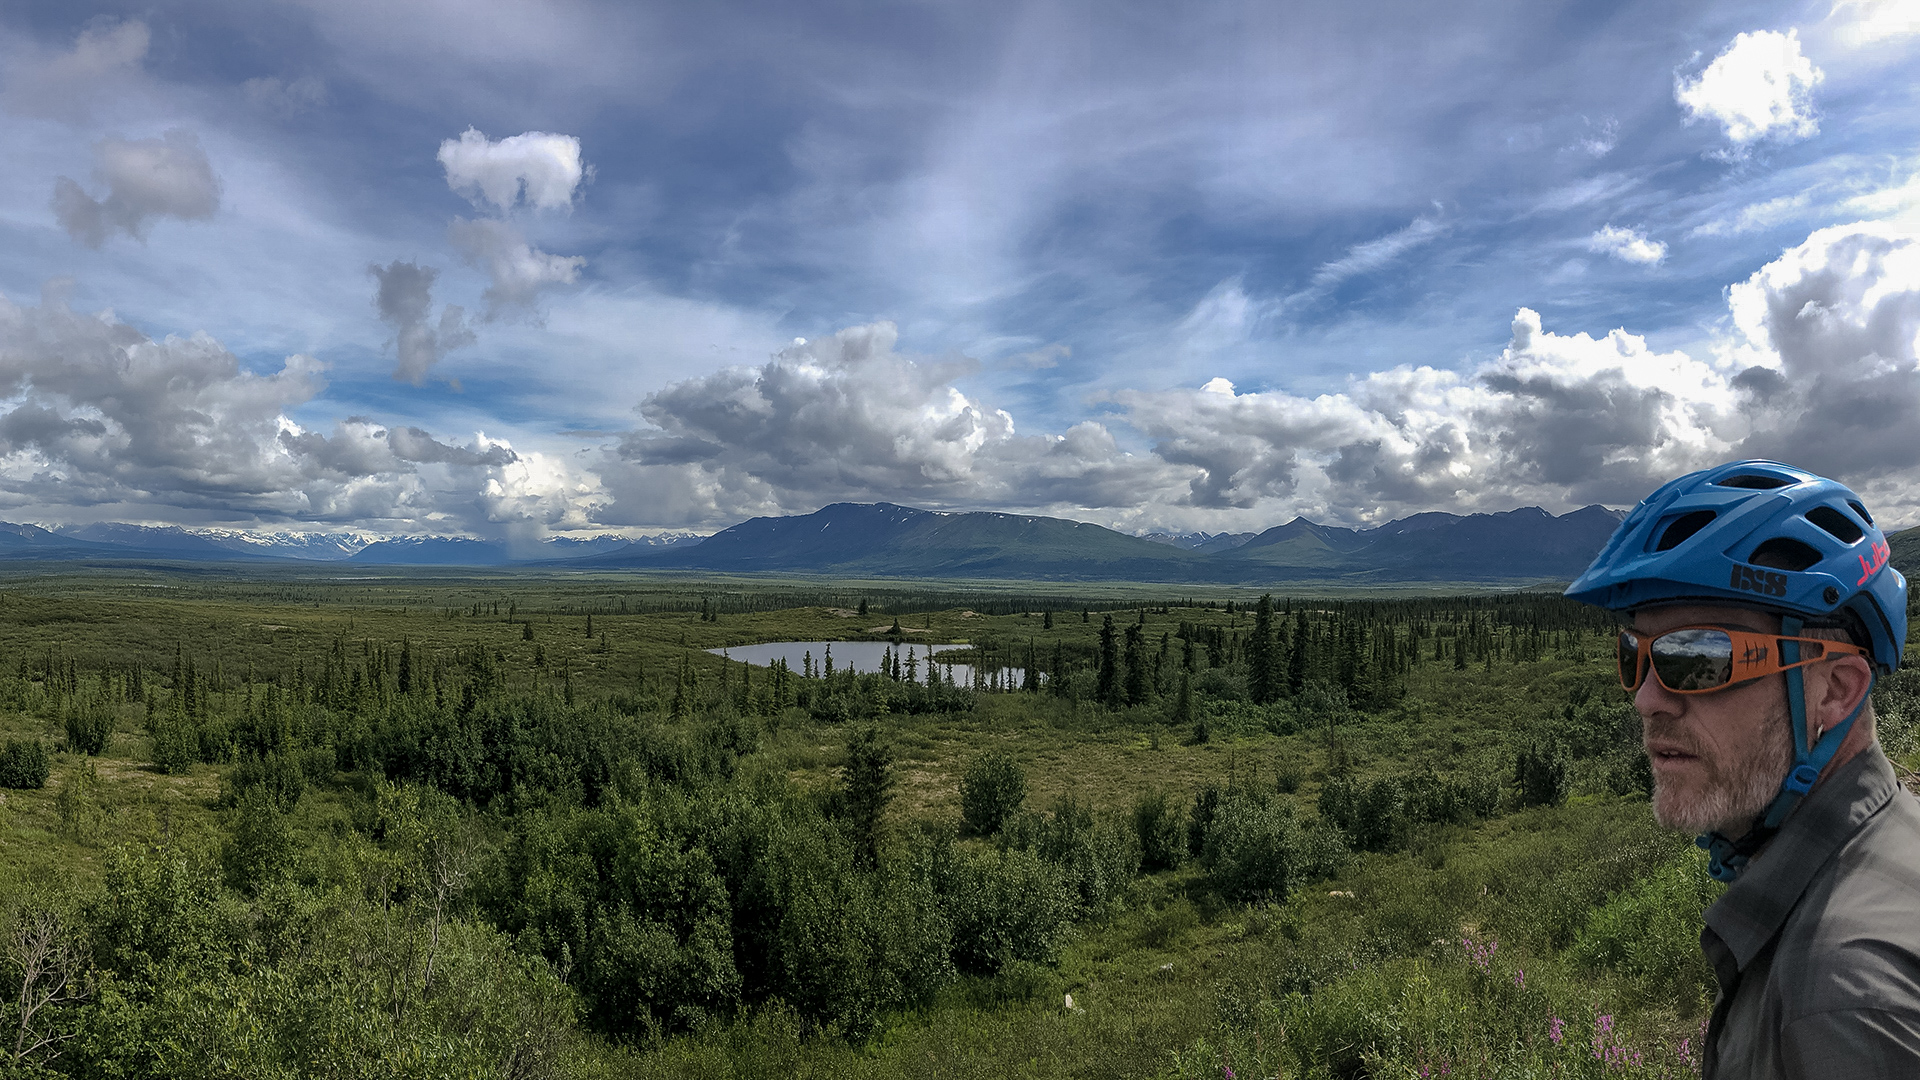 Bikepacking Alaska | Alaska is full of big wilderness